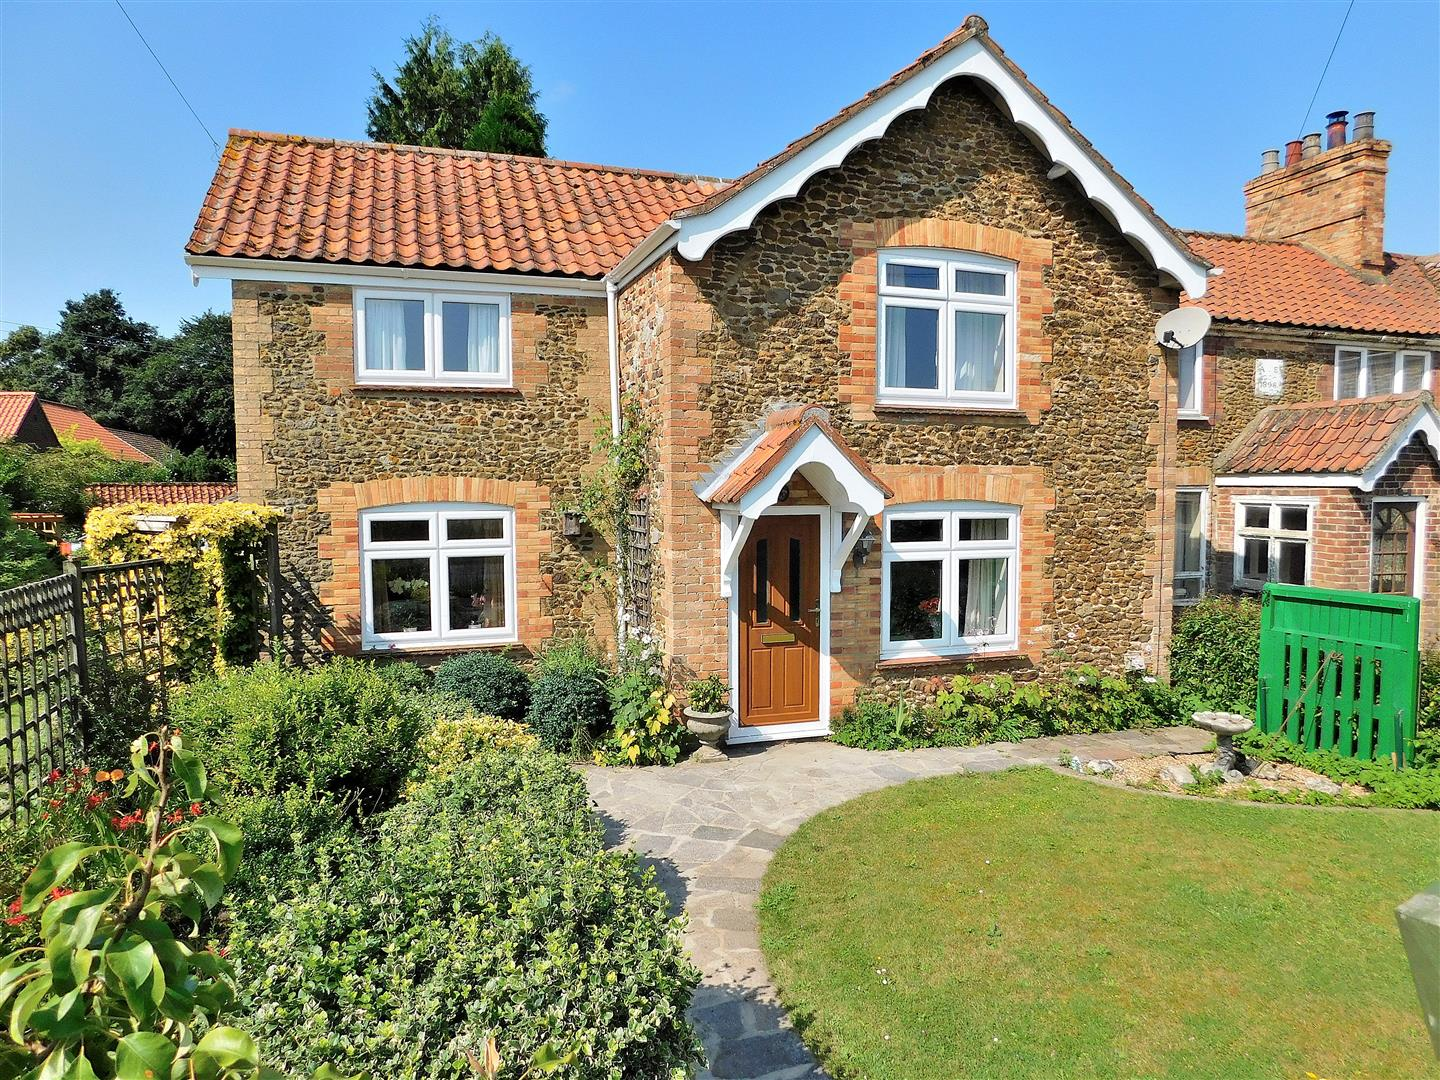 3 bed end of terrace house for sale in Church Hill, King's Lynn, PE32